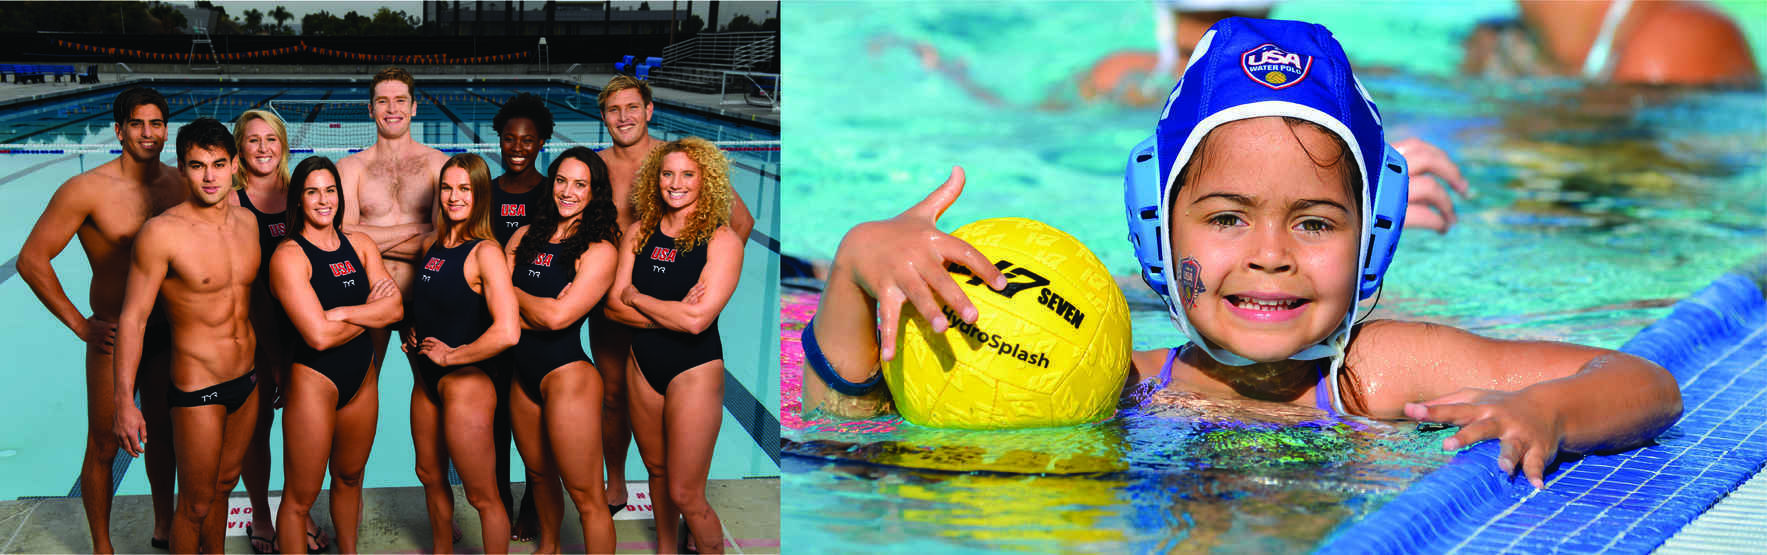 Your Gifts to USA Water Polo's Annual Fund Are The Most Direct & Impactful Way To Advance Our Sport! image